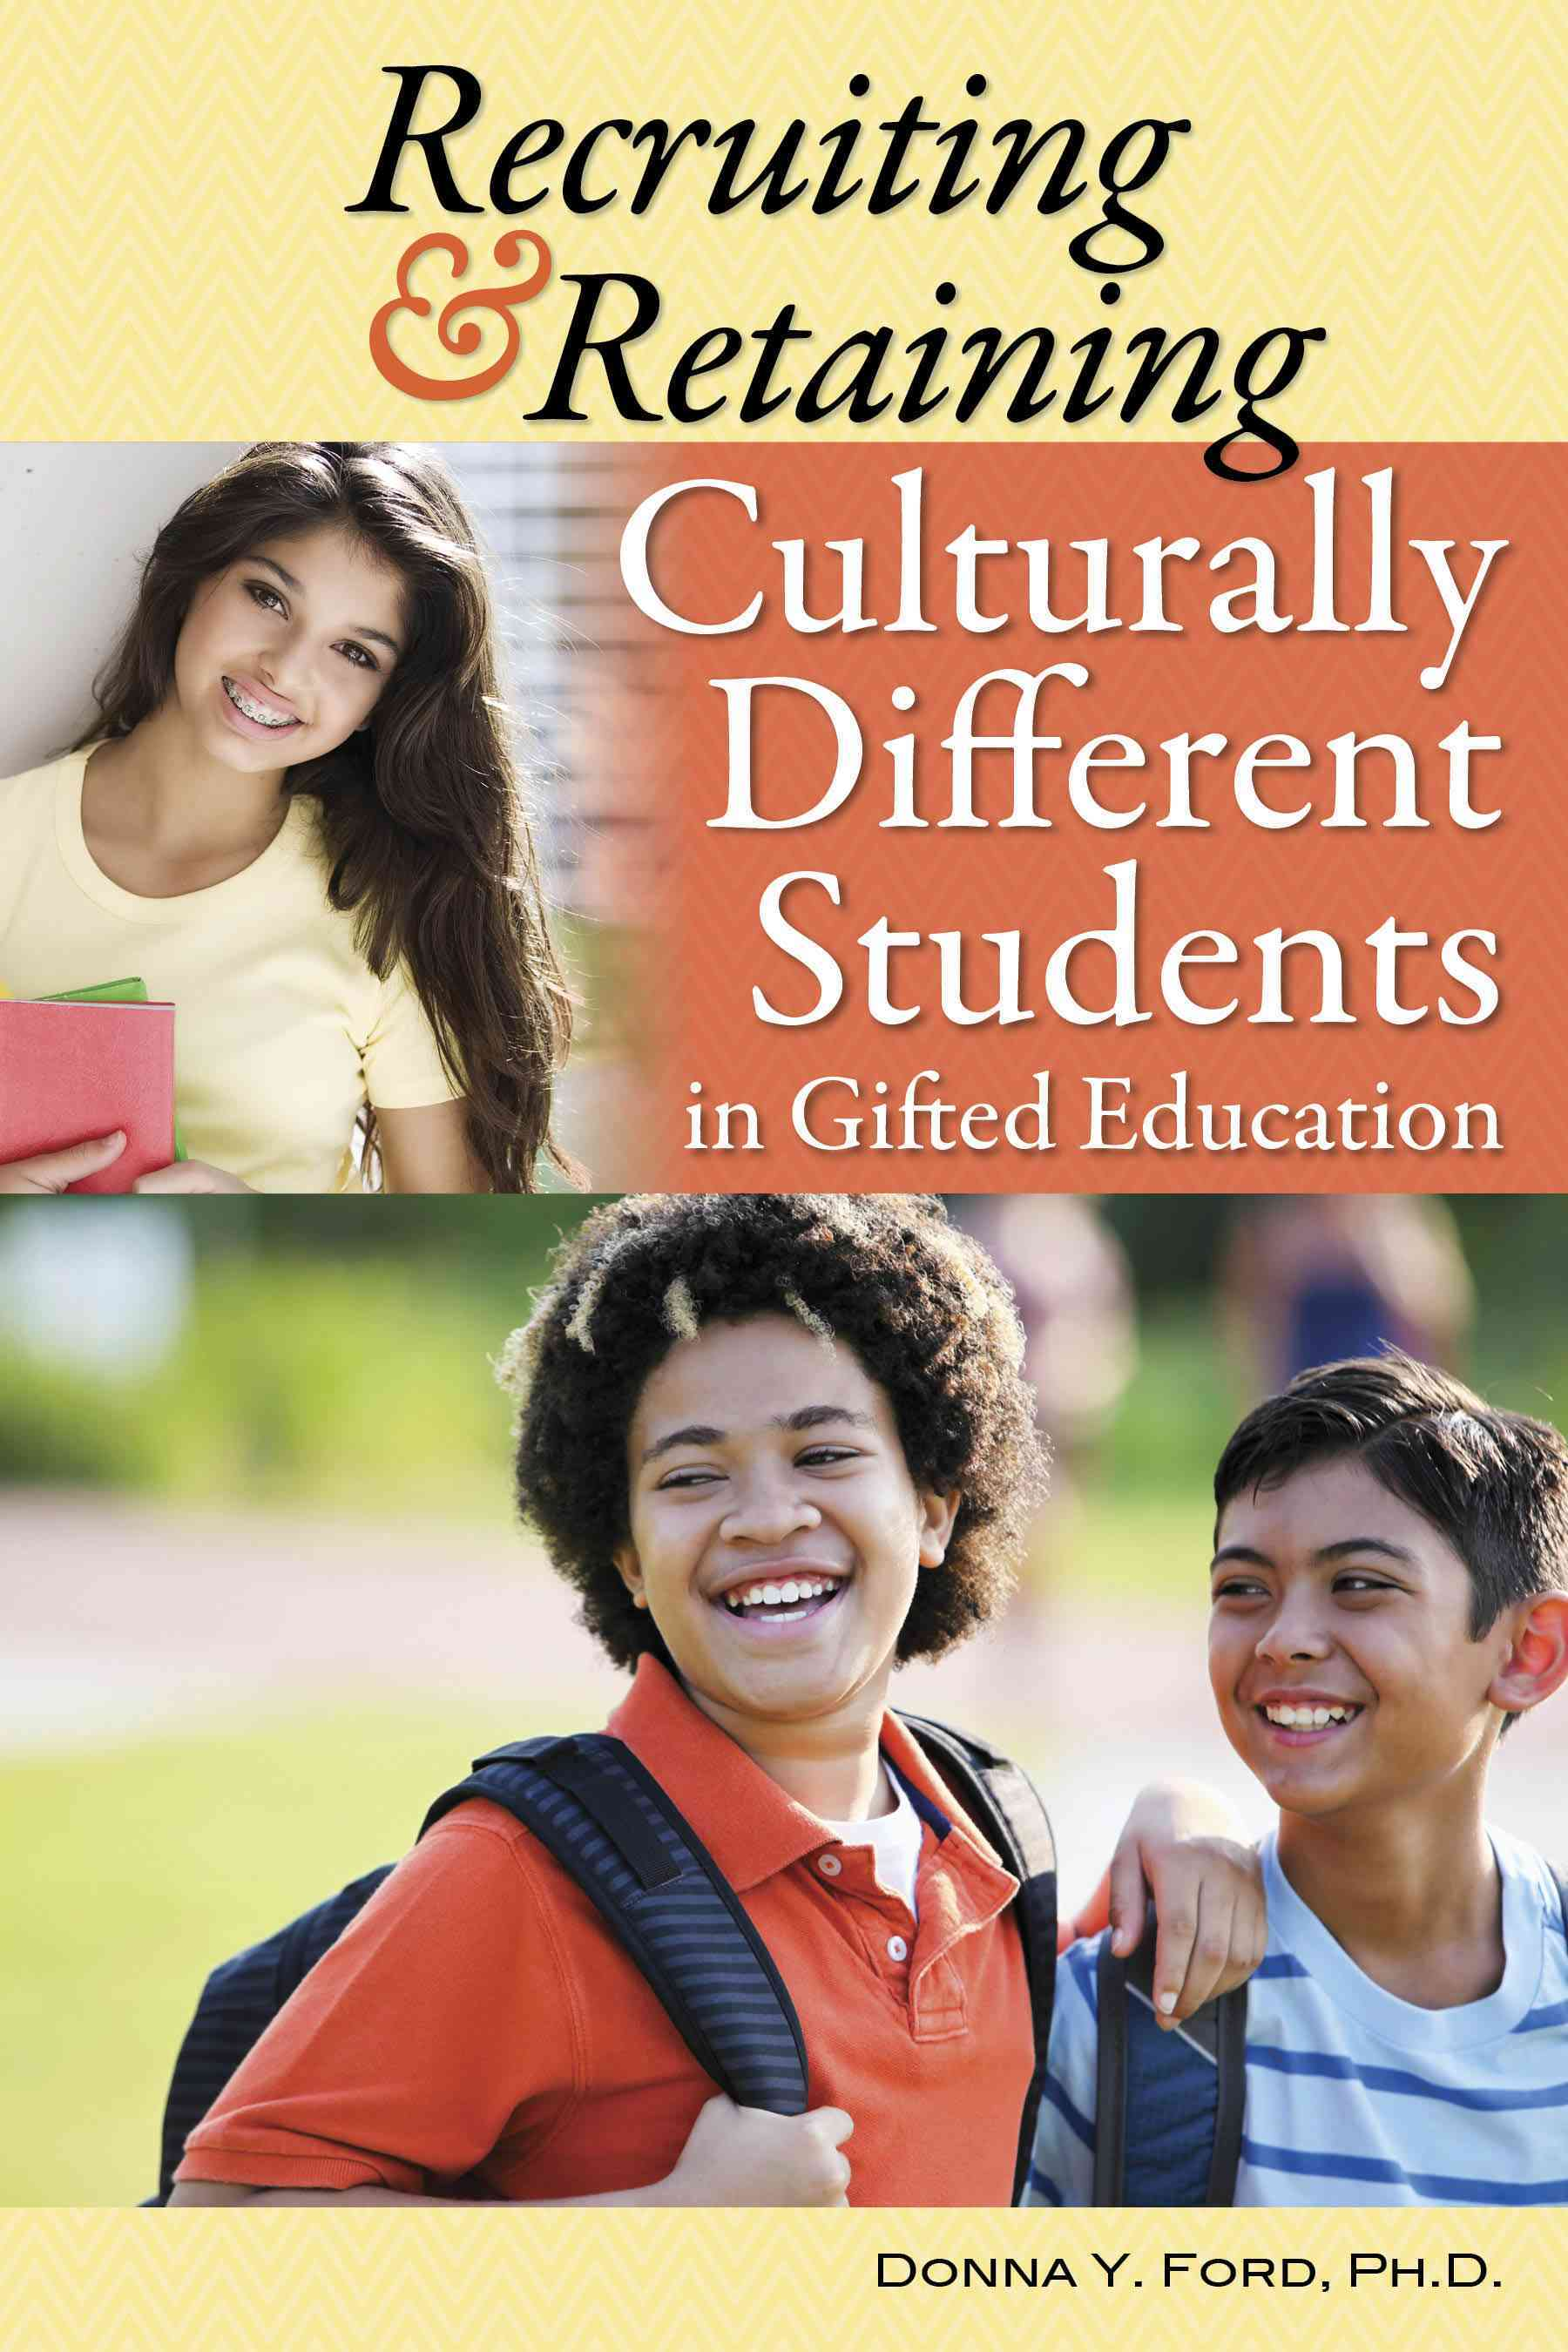 Recruiting and Retaining Culturally Different Students in Gifted Education By Ford, Donna Y.